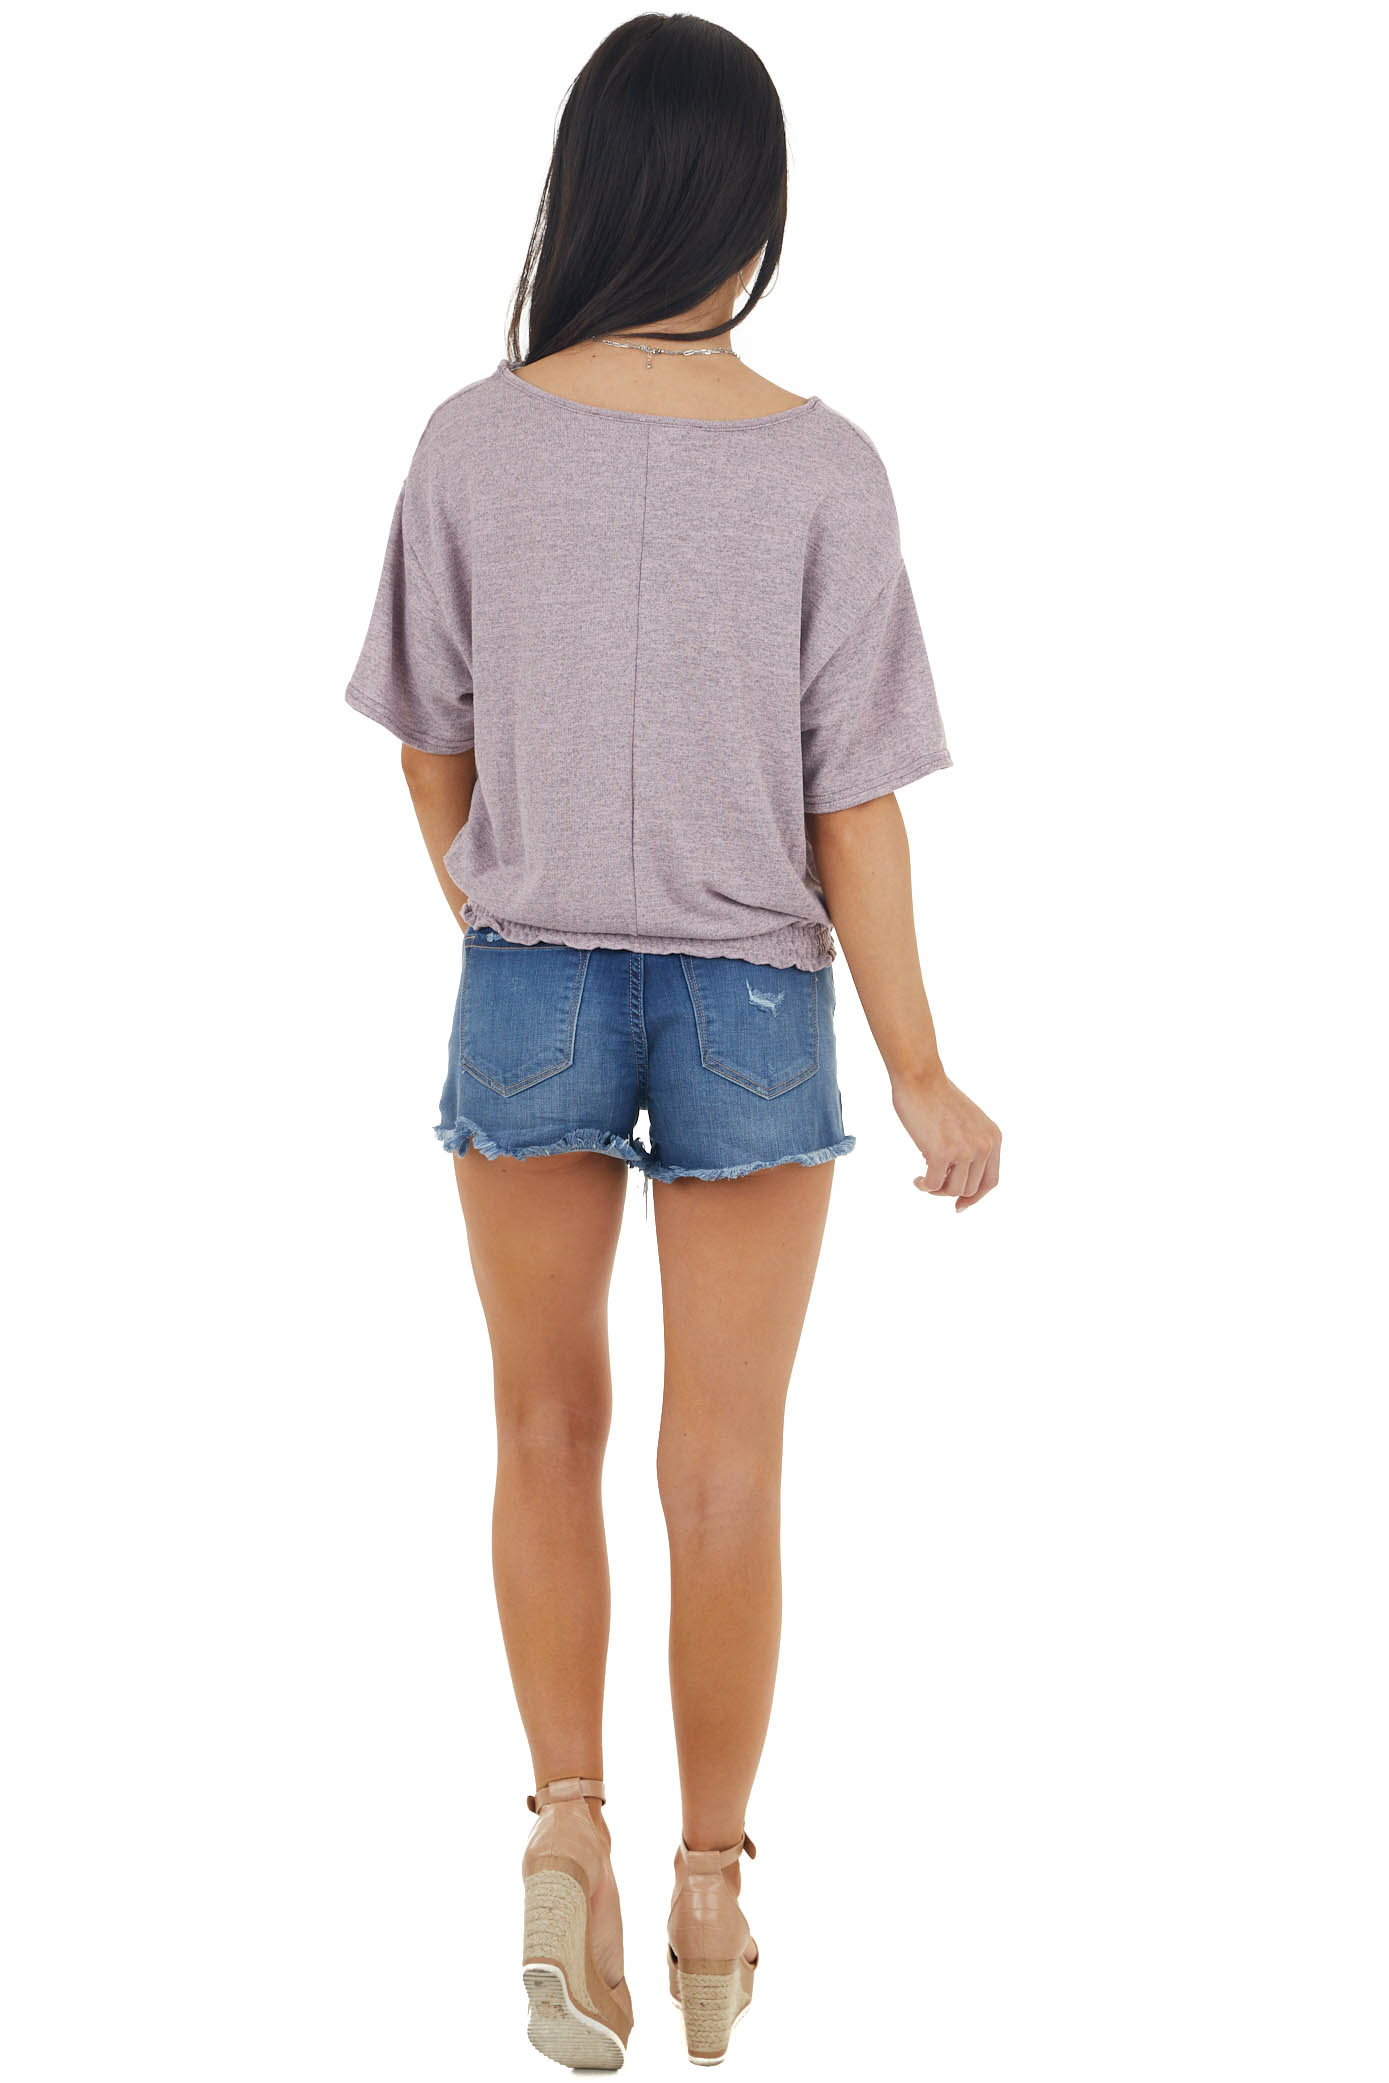 Mauve Two Toned Short Sleeve Top with Smocked Hemline